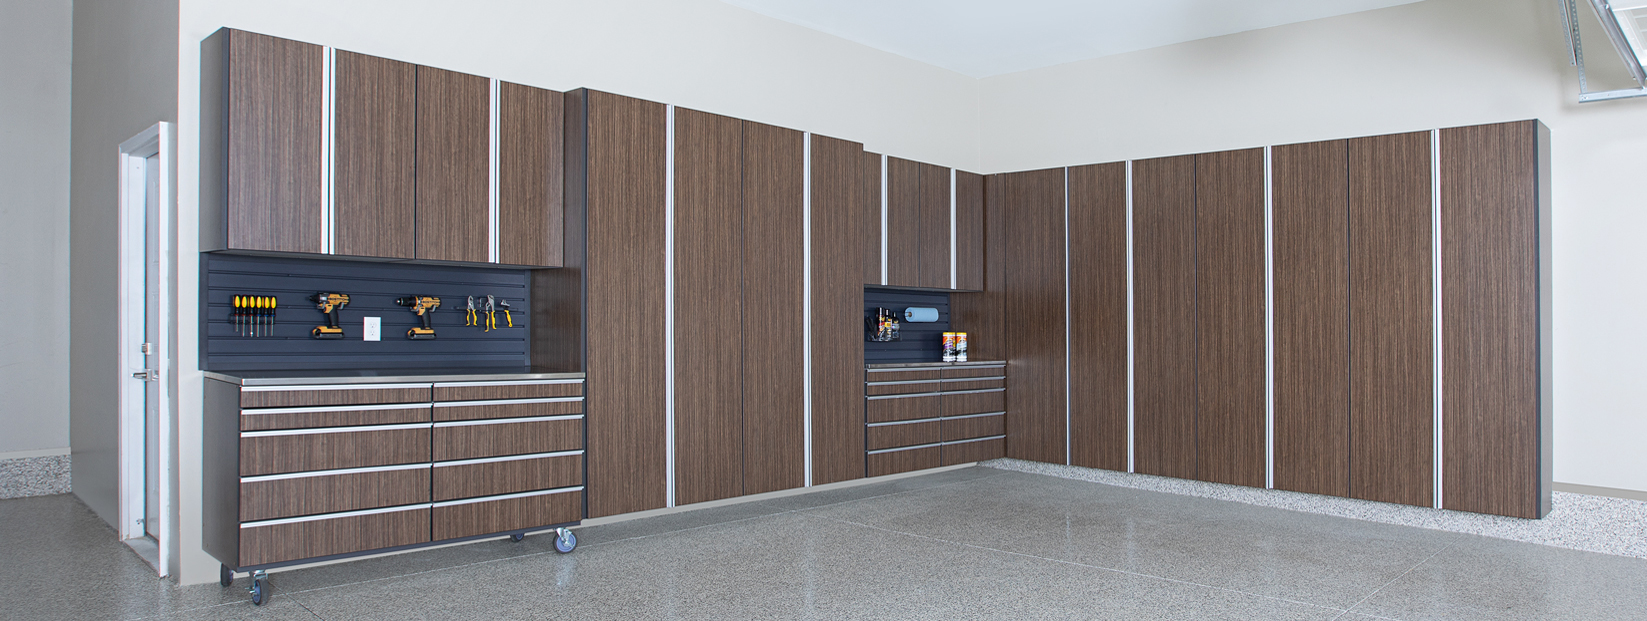 Garage Cabinets Tampa